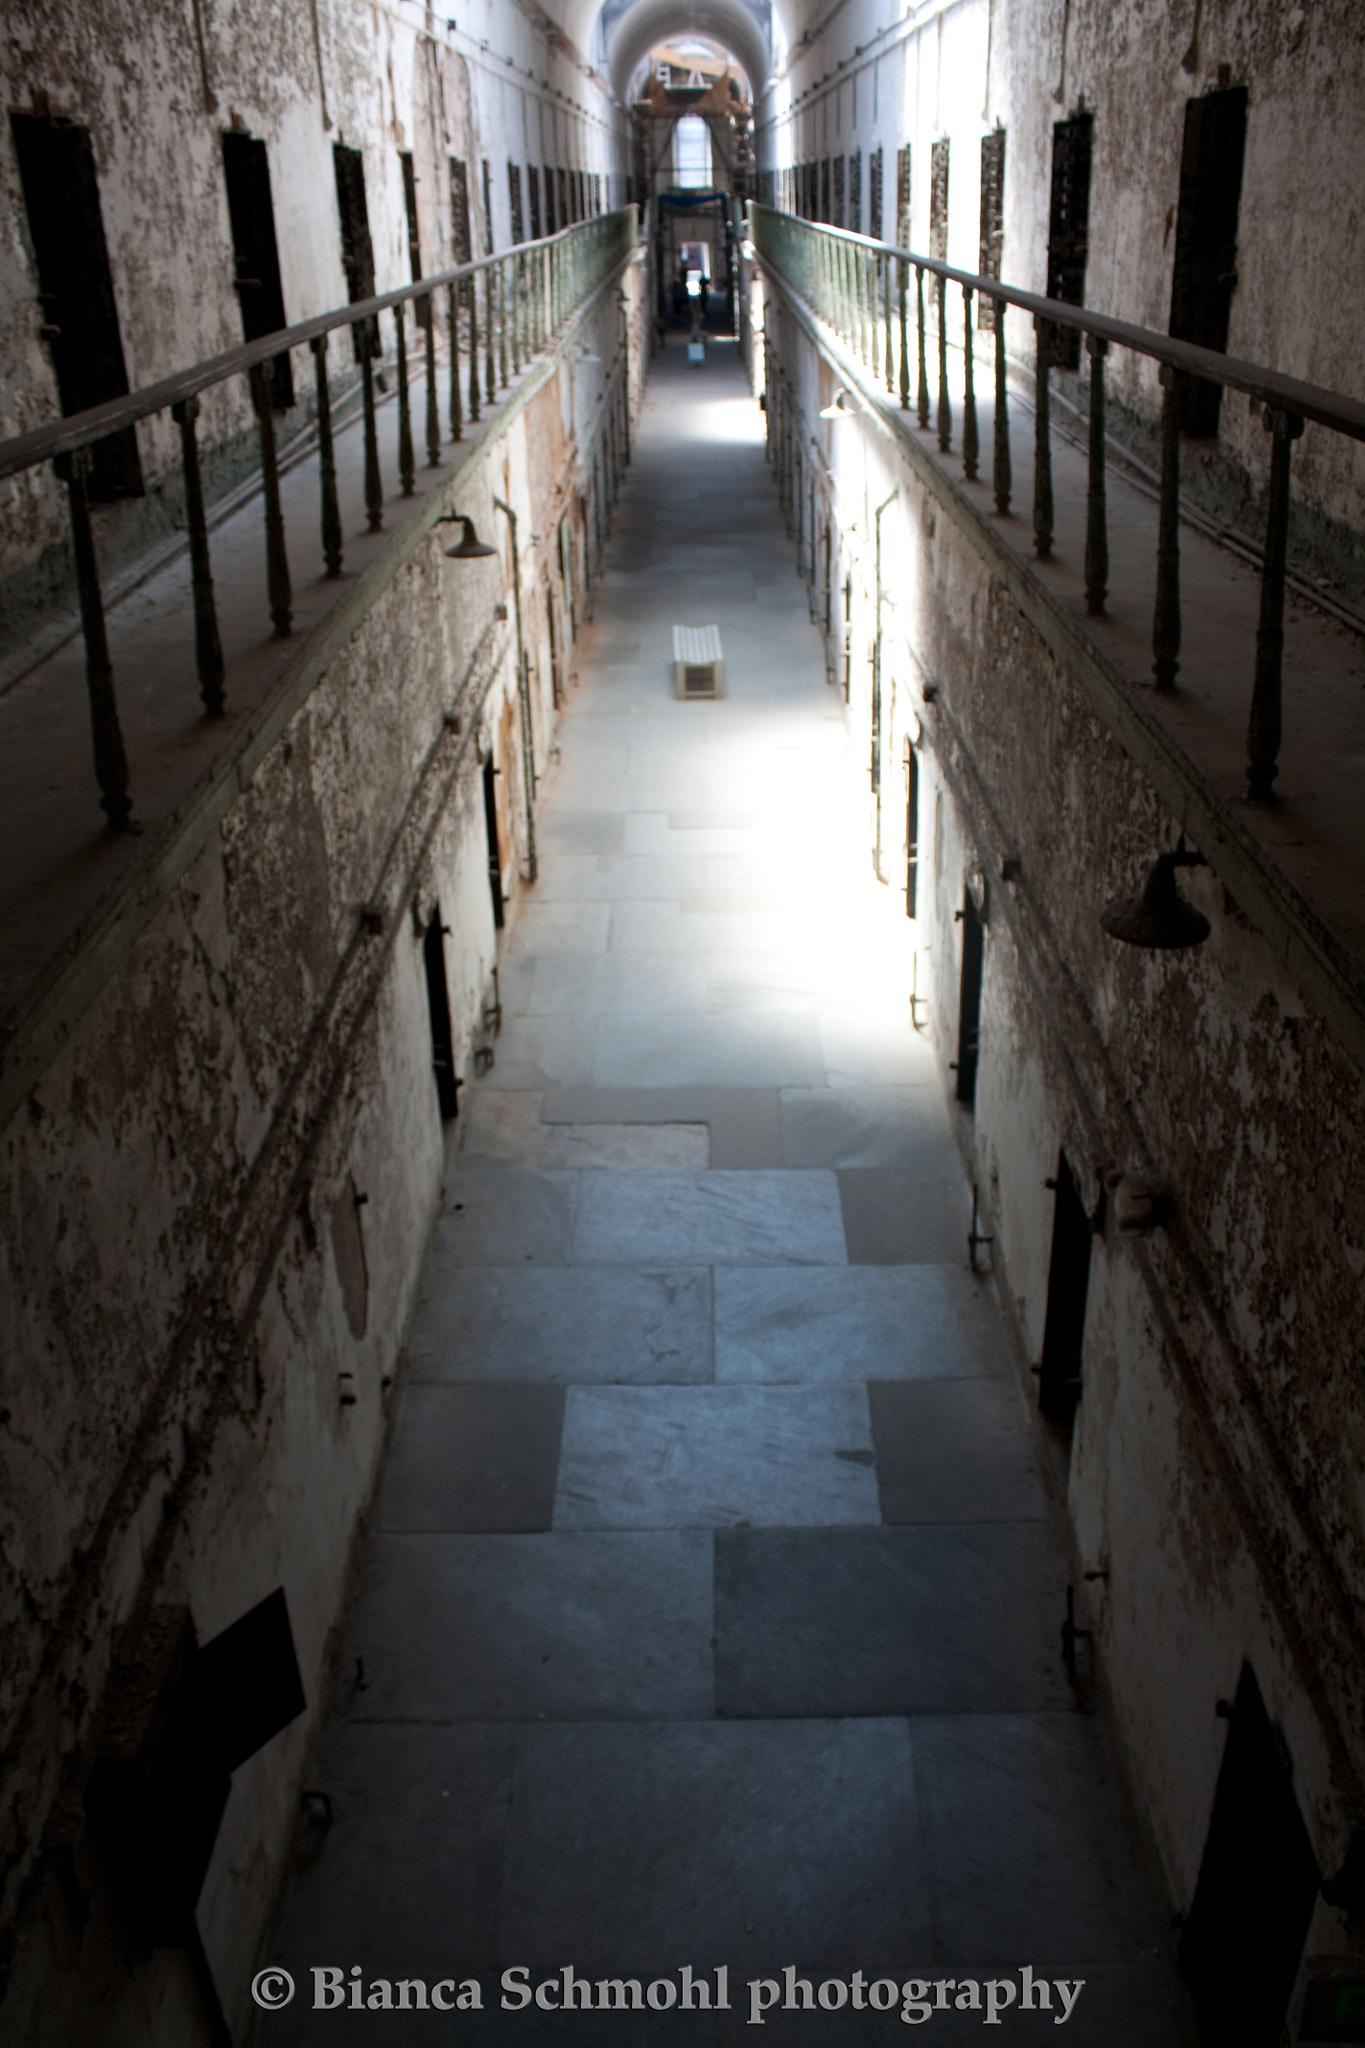 eastern state penitentiary by bianca schmohl